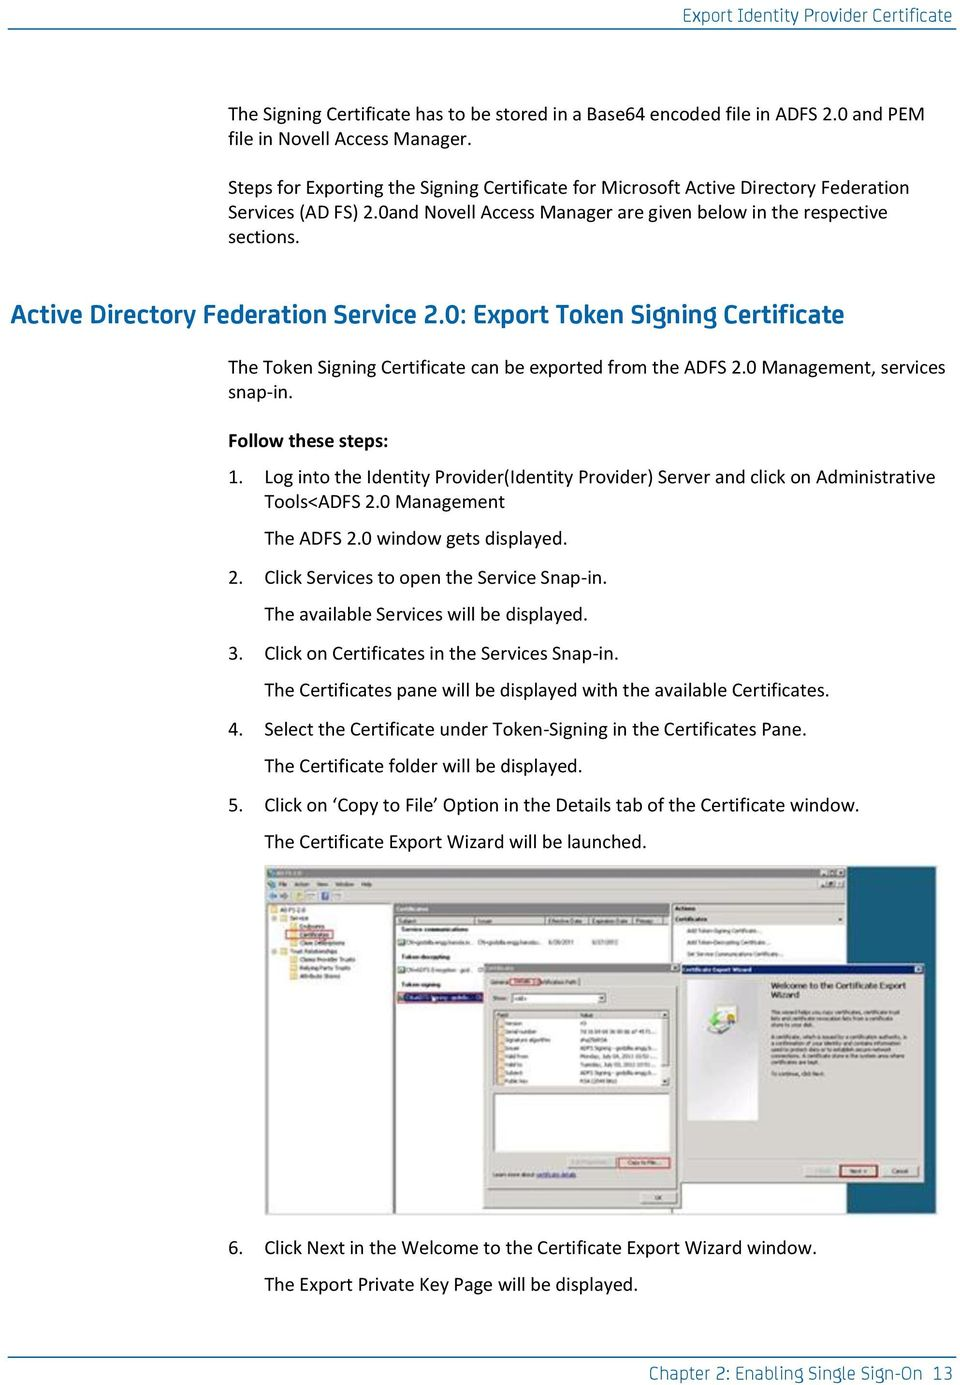 Active Directory Federation Service 2.0: Export Token Signing Certificate The Token Signing Certificate can be exported from the ADFS 2.0 Management, services snap-in. Follow these steps: 1.